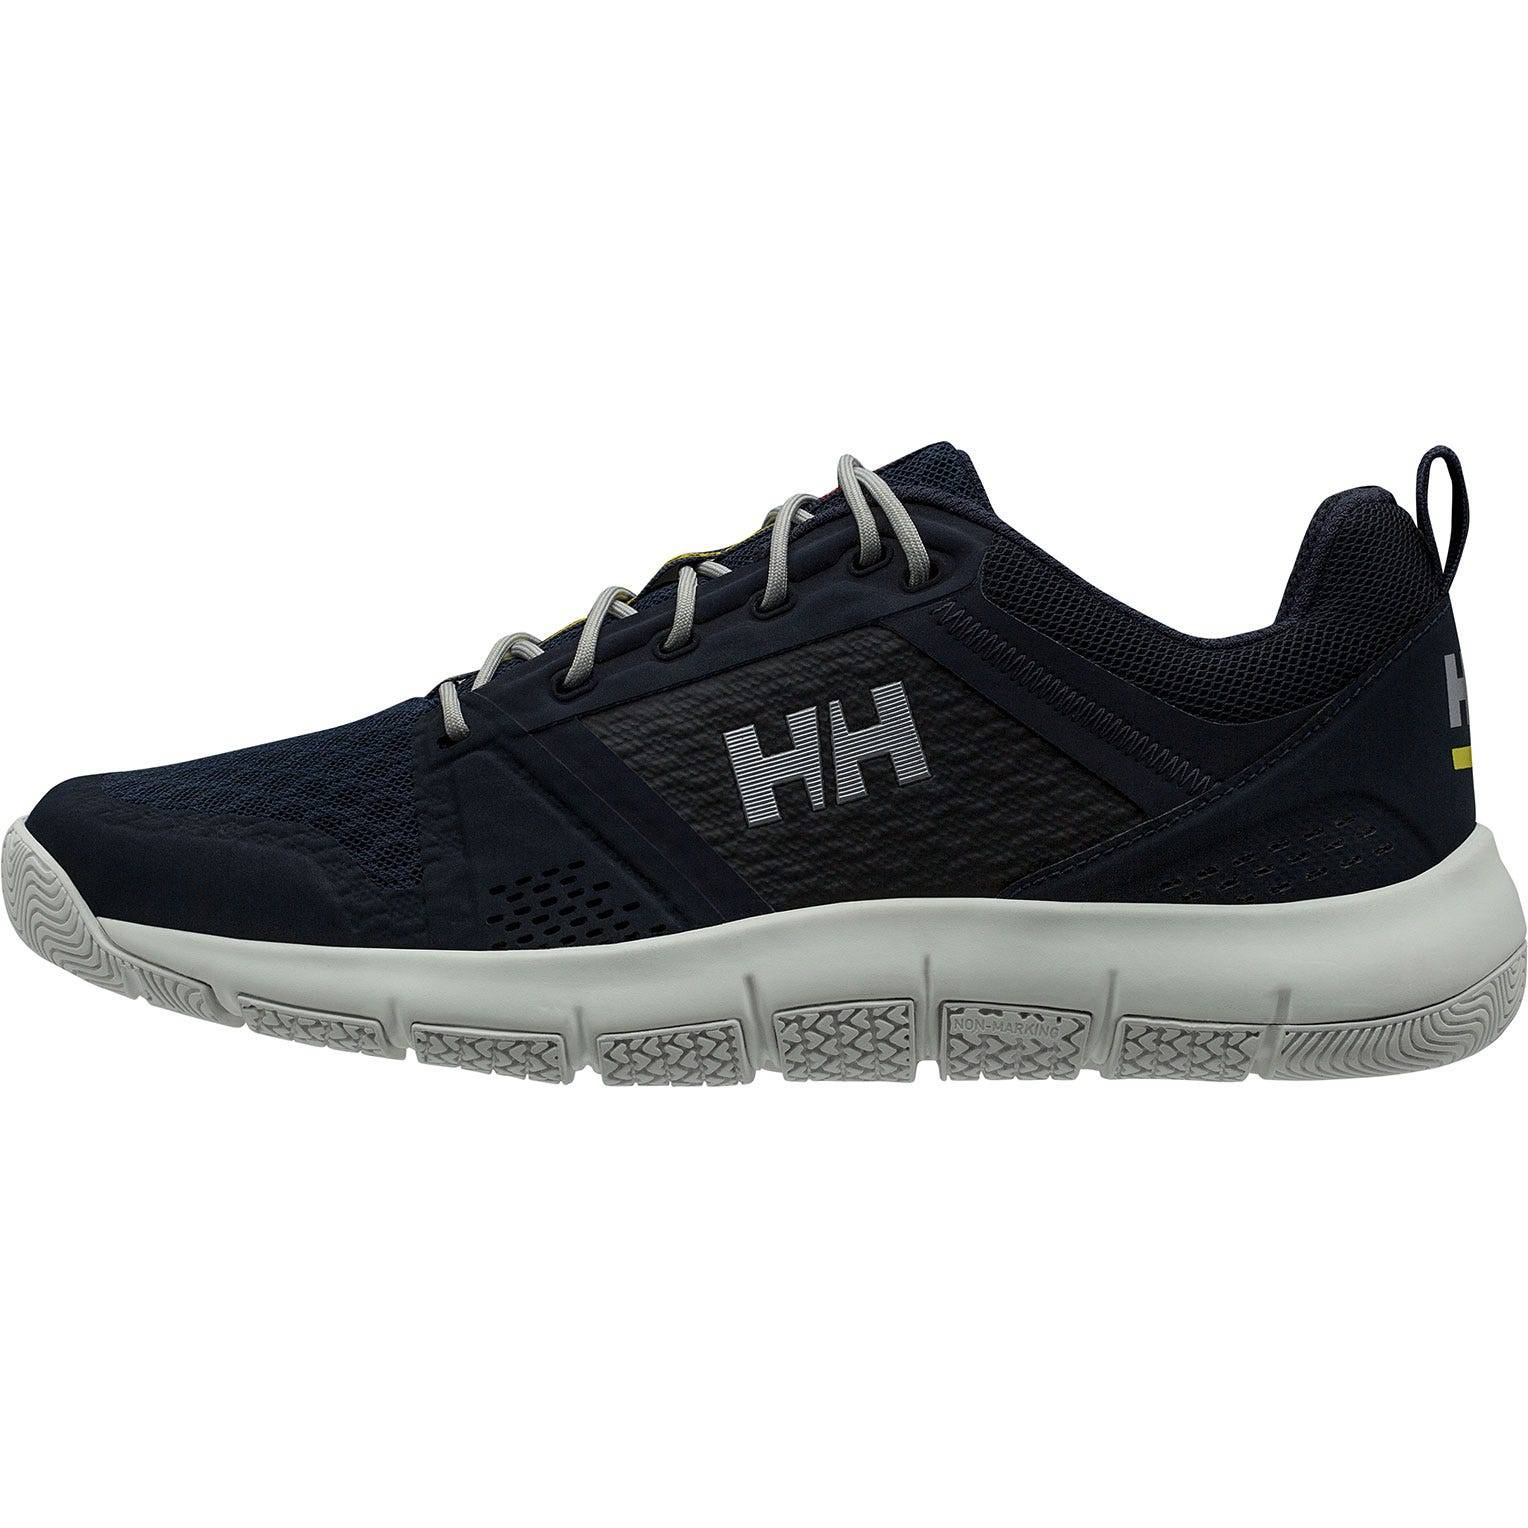 Helly Hansen W Skagen F1 Offshore Womens Sailing Shoe Navy 41/9.5